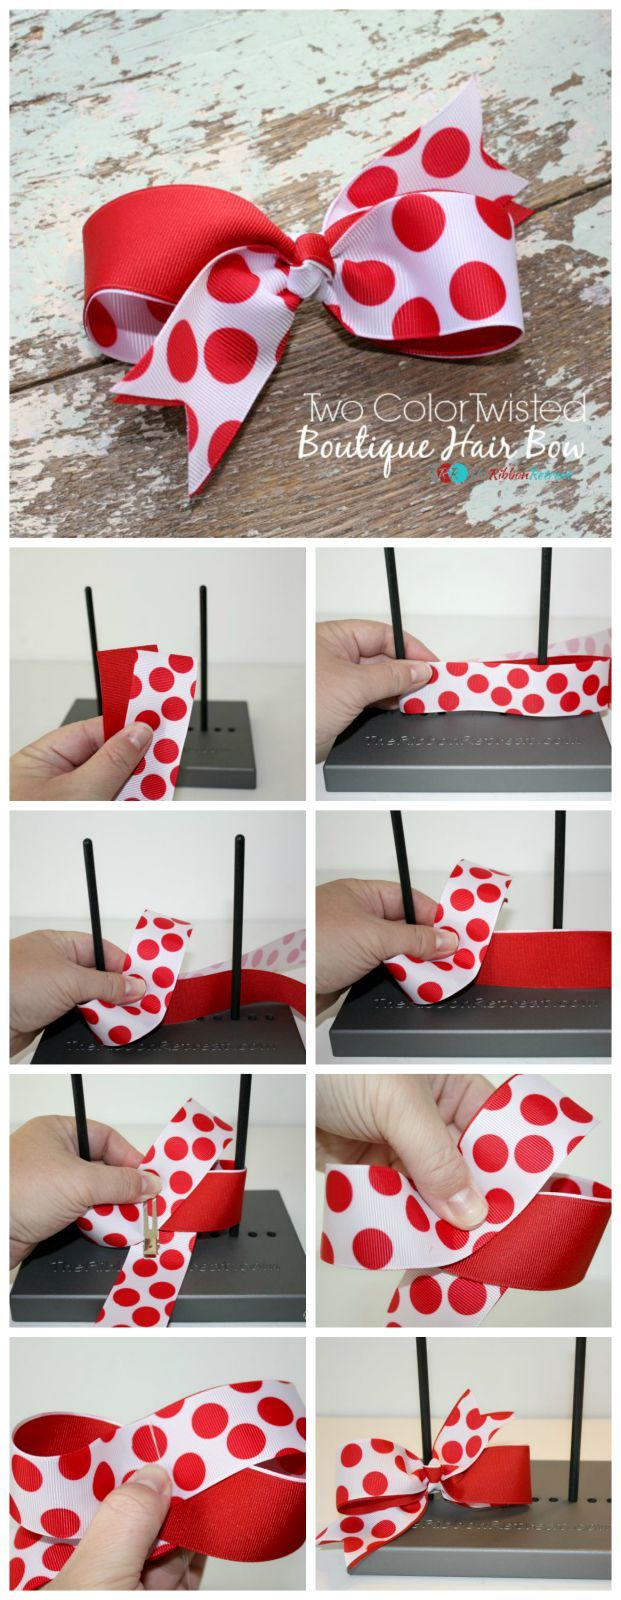 How To Make A Two Color Twisted Boutique Hair Bow - The Ribbon Retreat Blog